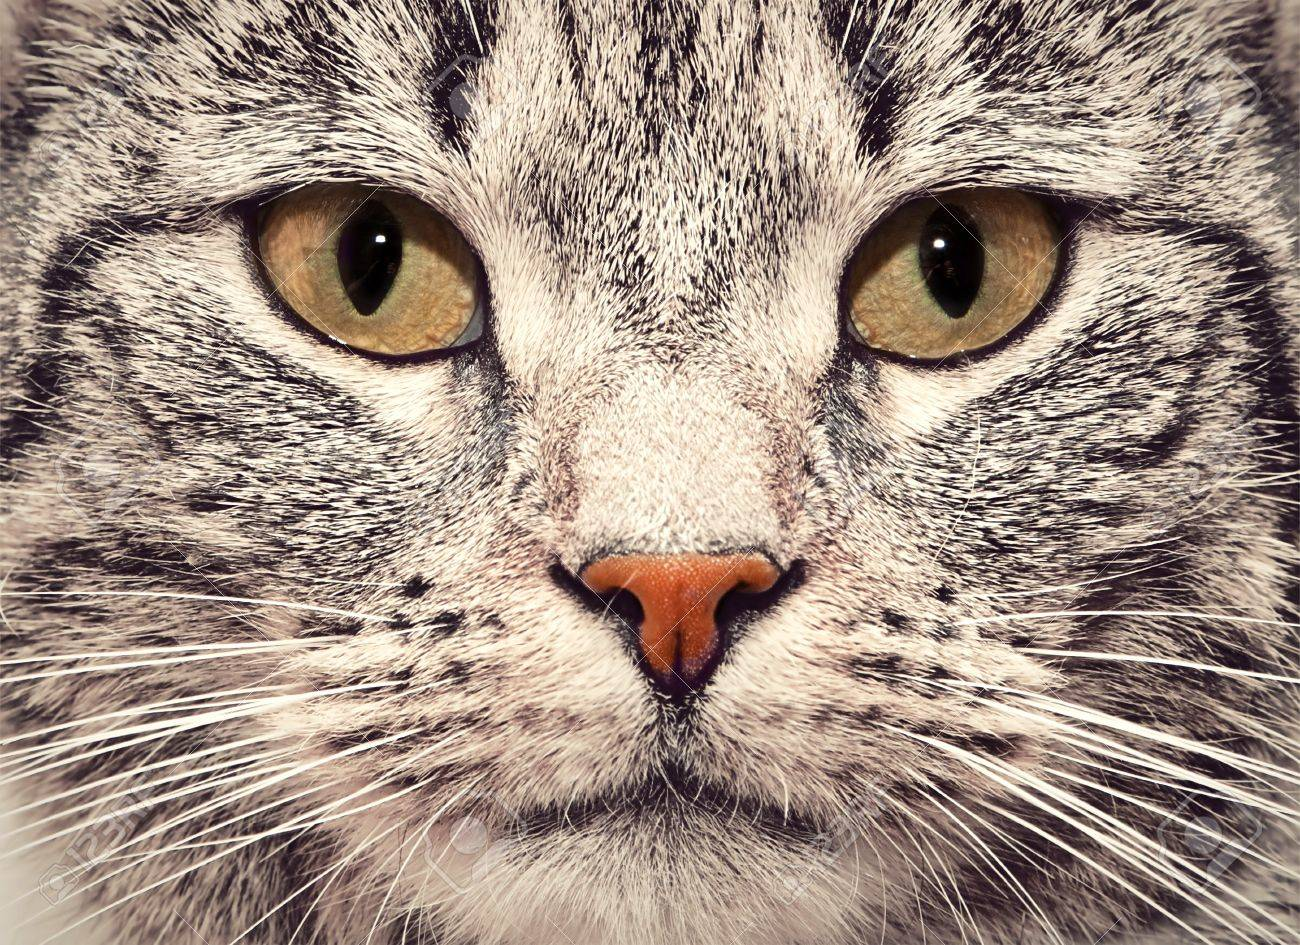 Cute Cat Face Close Up Portrait Looking Straight At The Camera